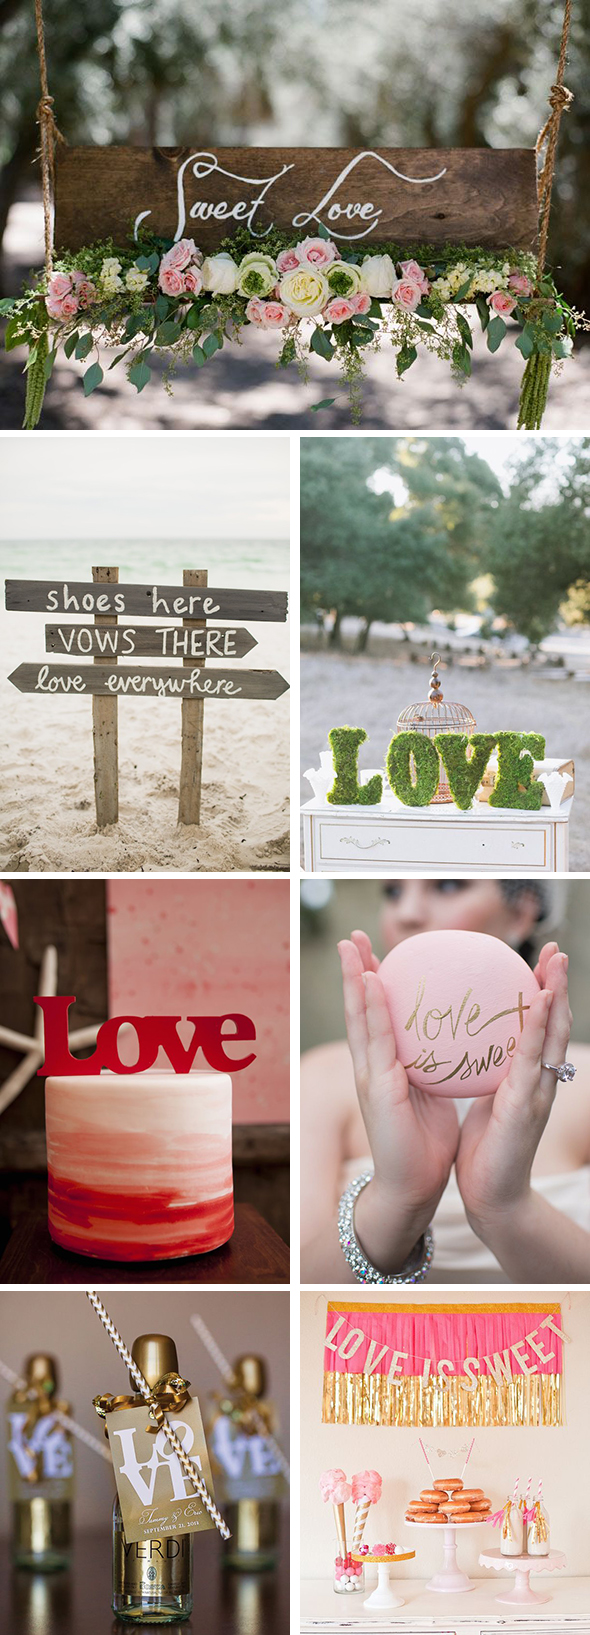 love theme Love Wedding Theme